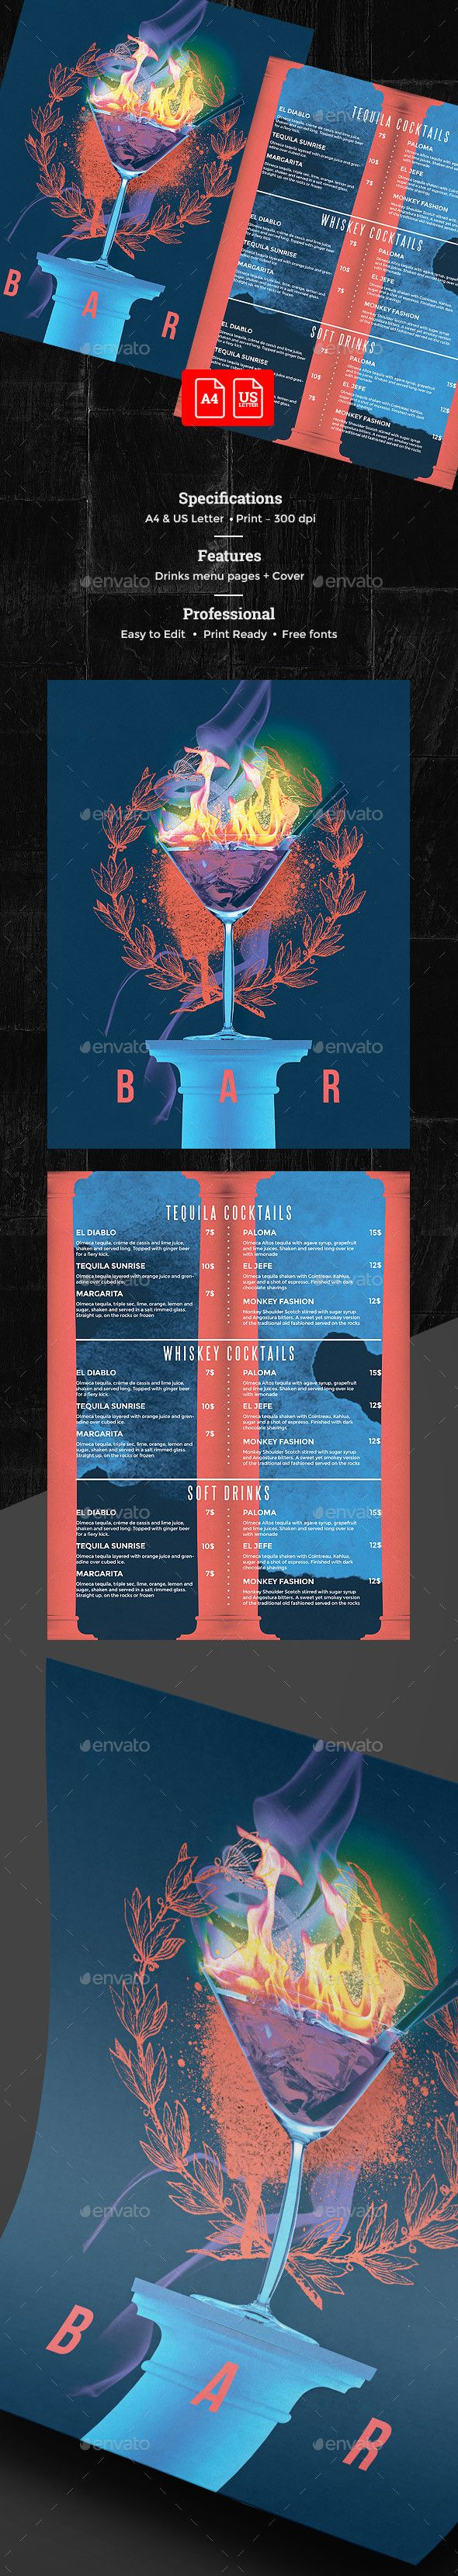 Cocktail Drinks Menu — Photoshop PSD #restaurant #cocktail drinks • Download ➝ https://graphicriver.net/item/cocktail-drinks-menu/19904485?ref=pxcr